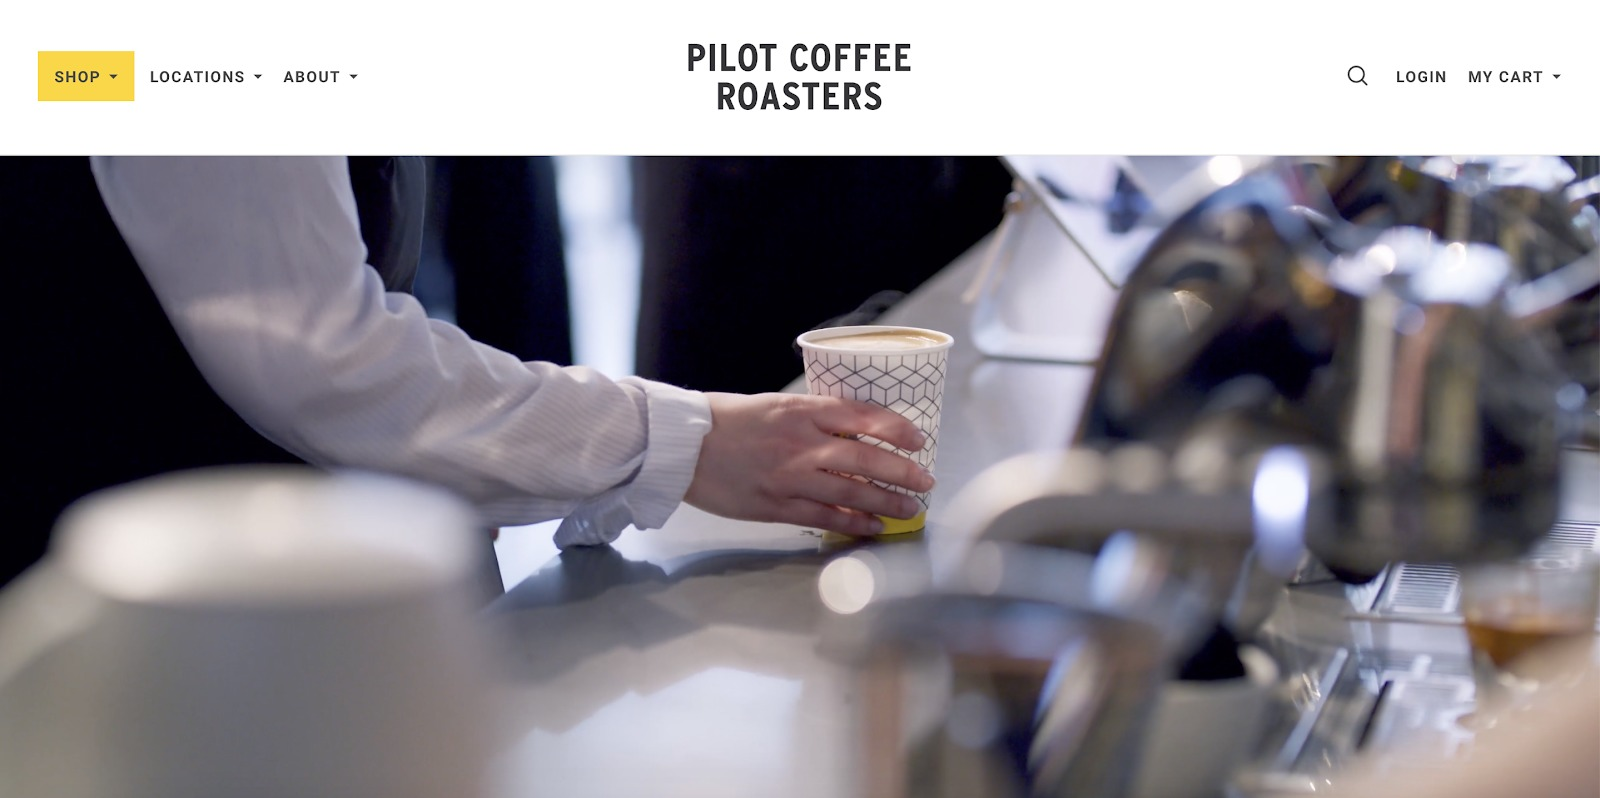 pilot coffee roasters store example